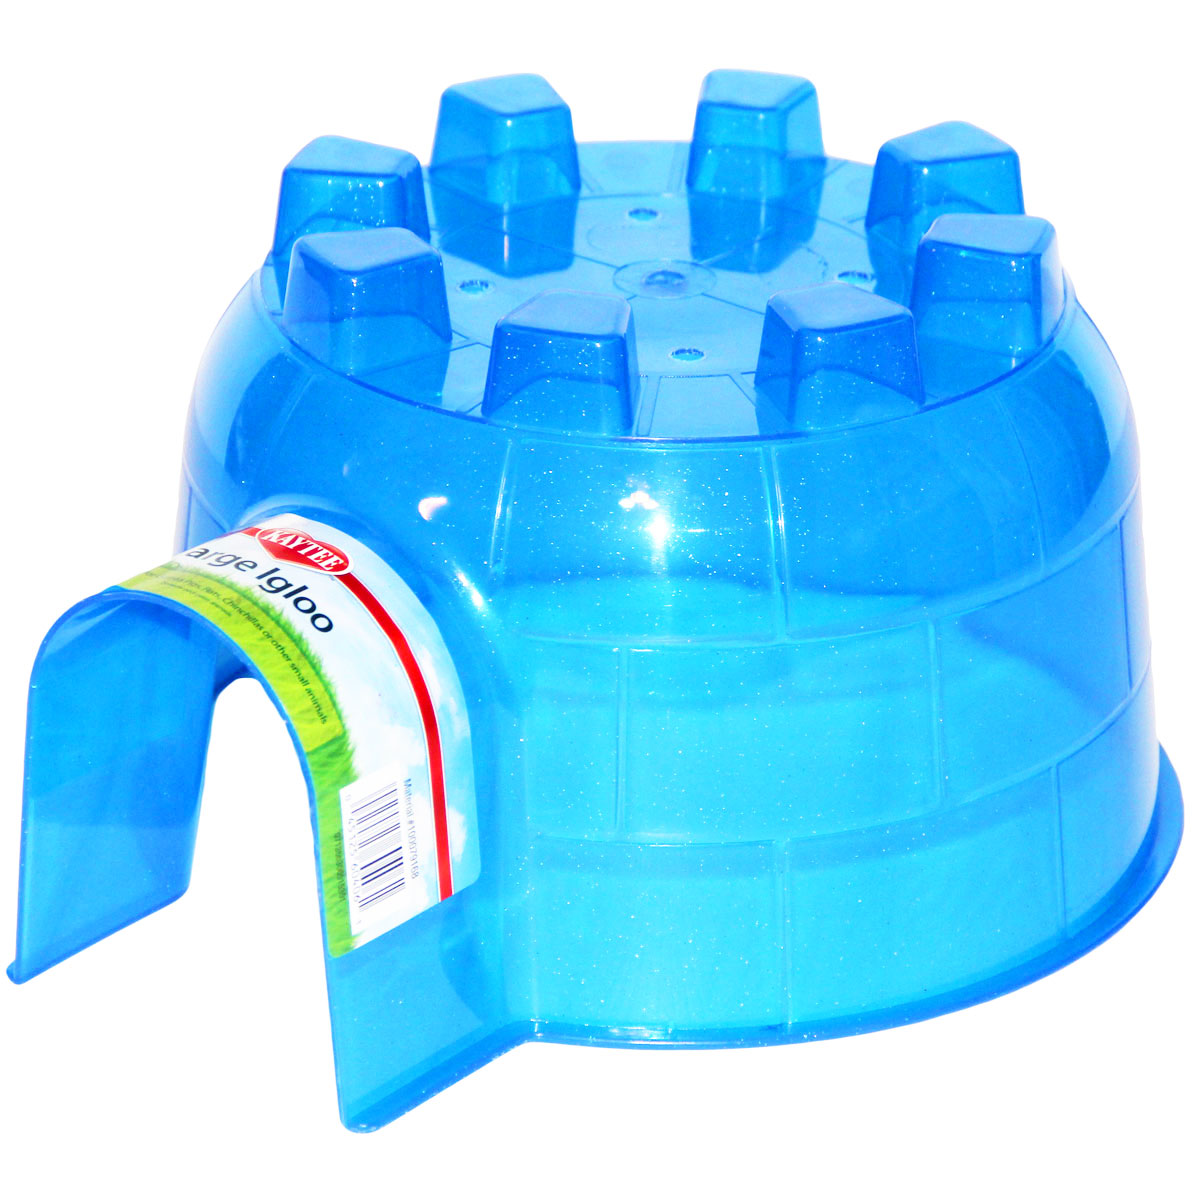 Plastic pigloos igloos for guinea pigs for Where to get c c cages